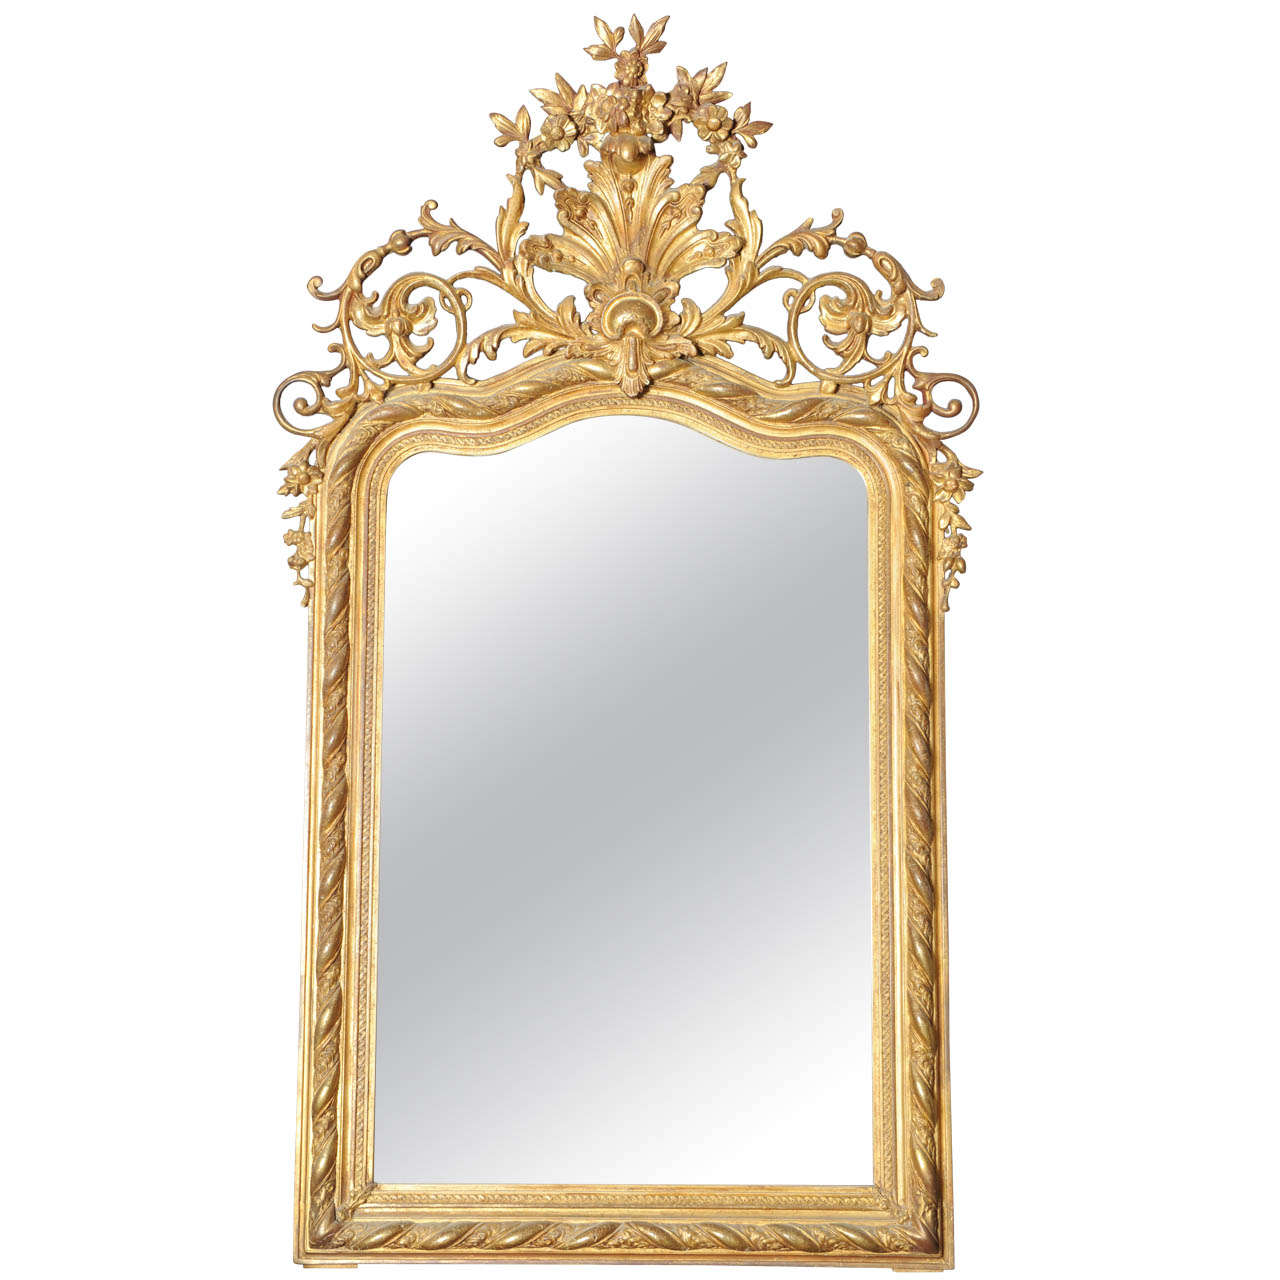 Very Rich and Elaborate French Gilt Wood Over Mantel Mirror